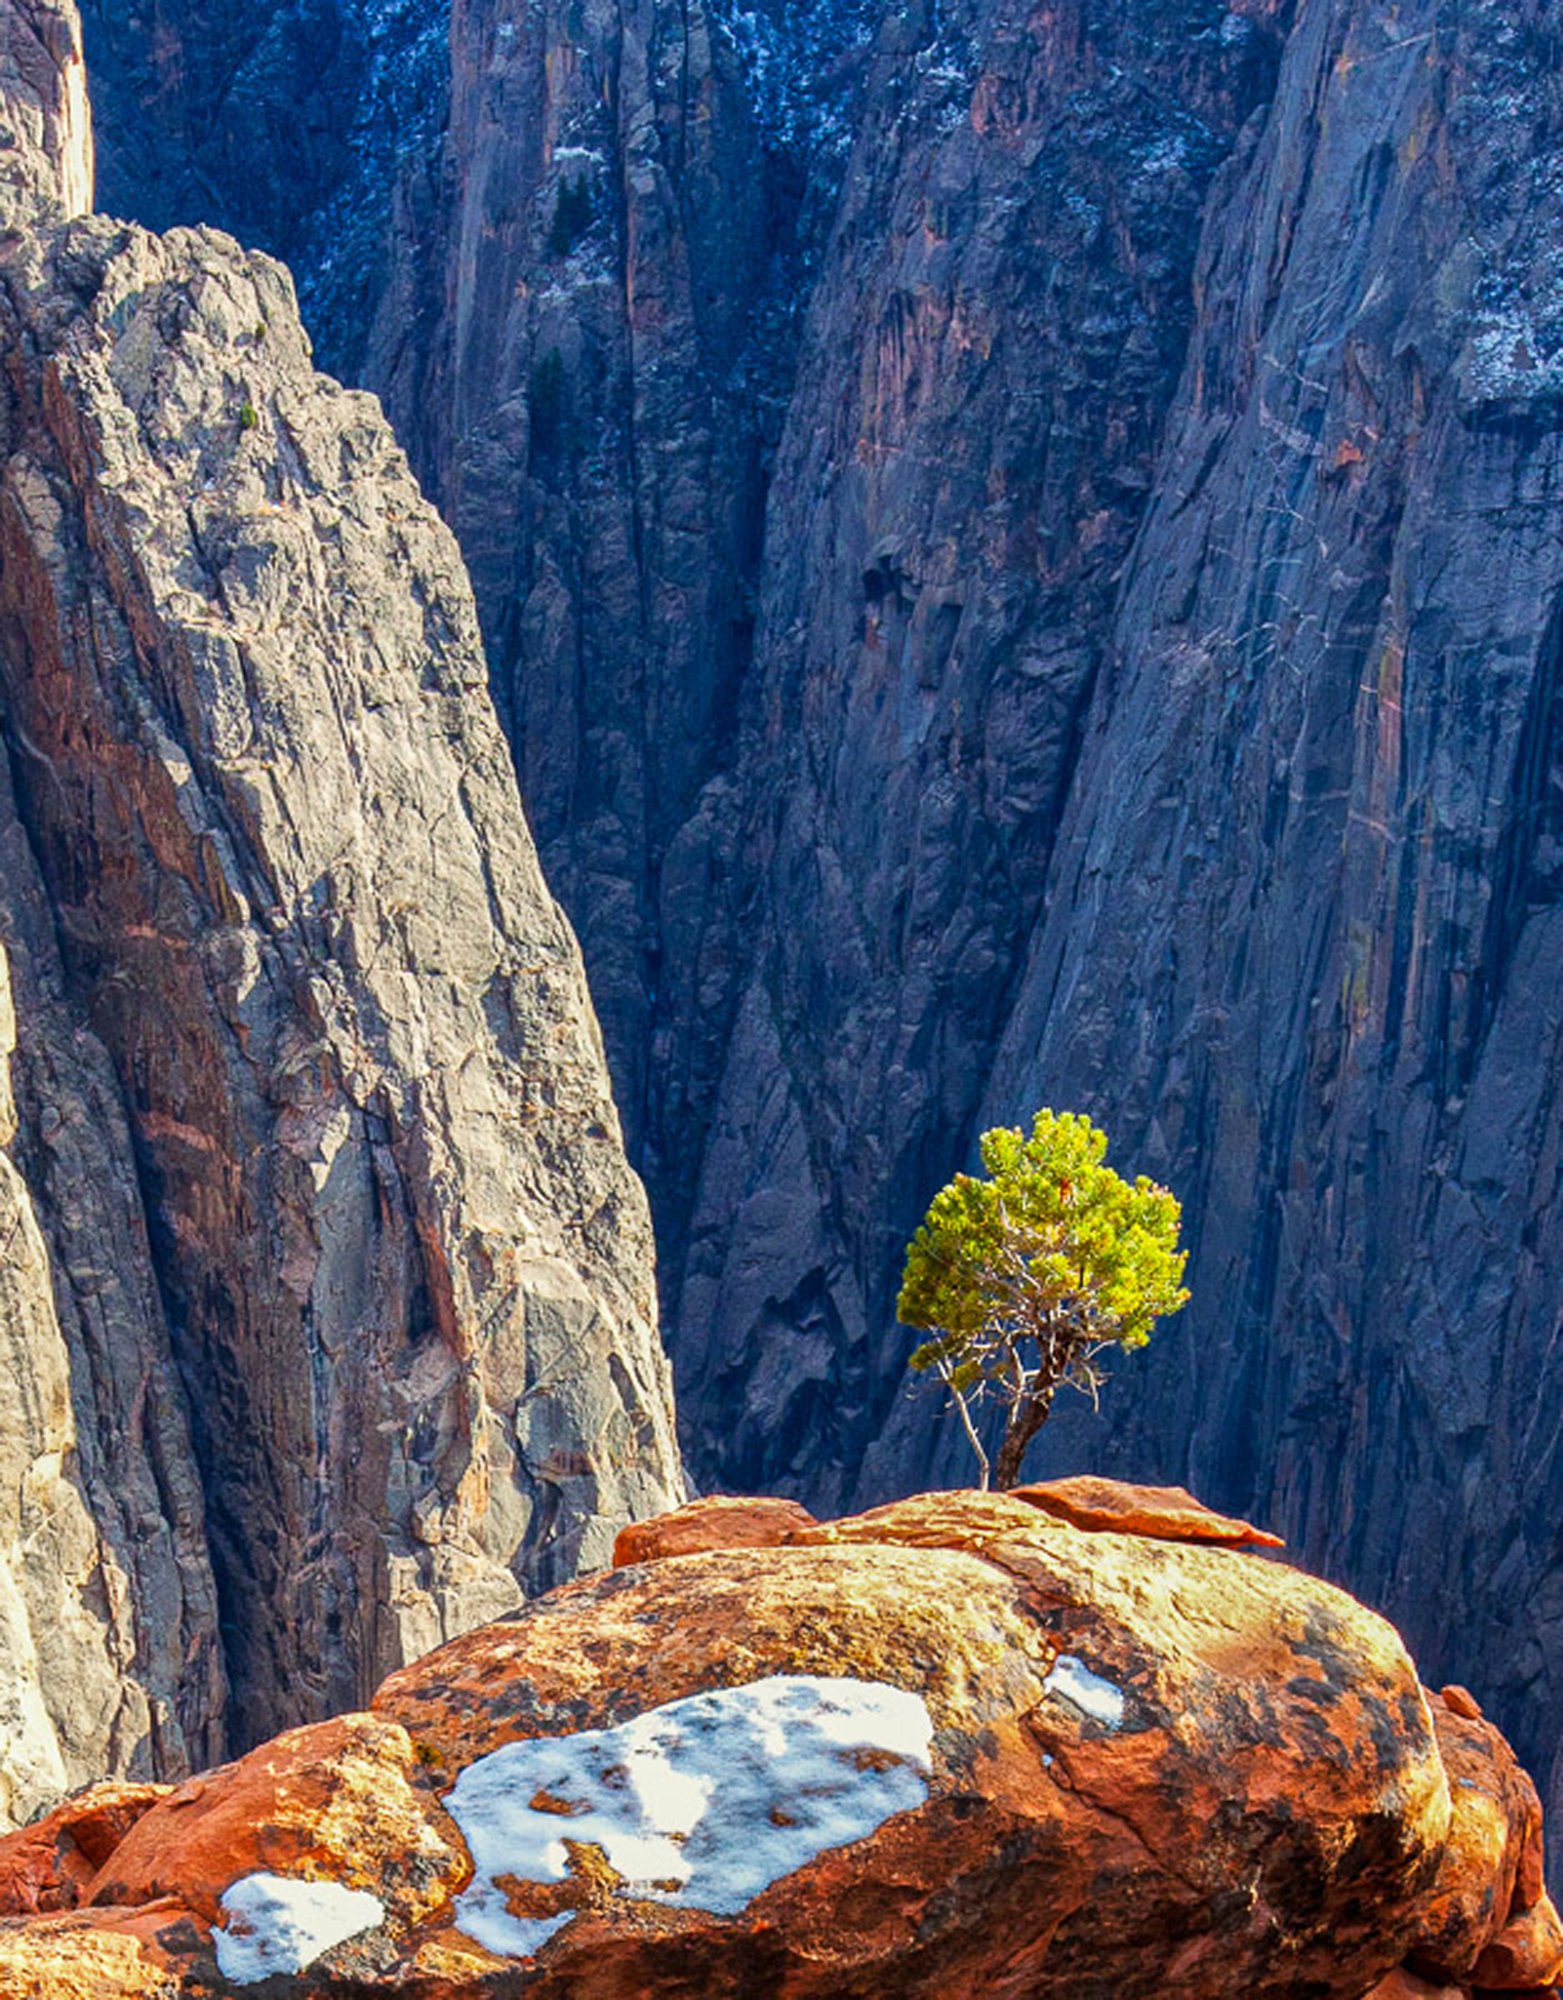 Black Canyon of the Gunnison #1